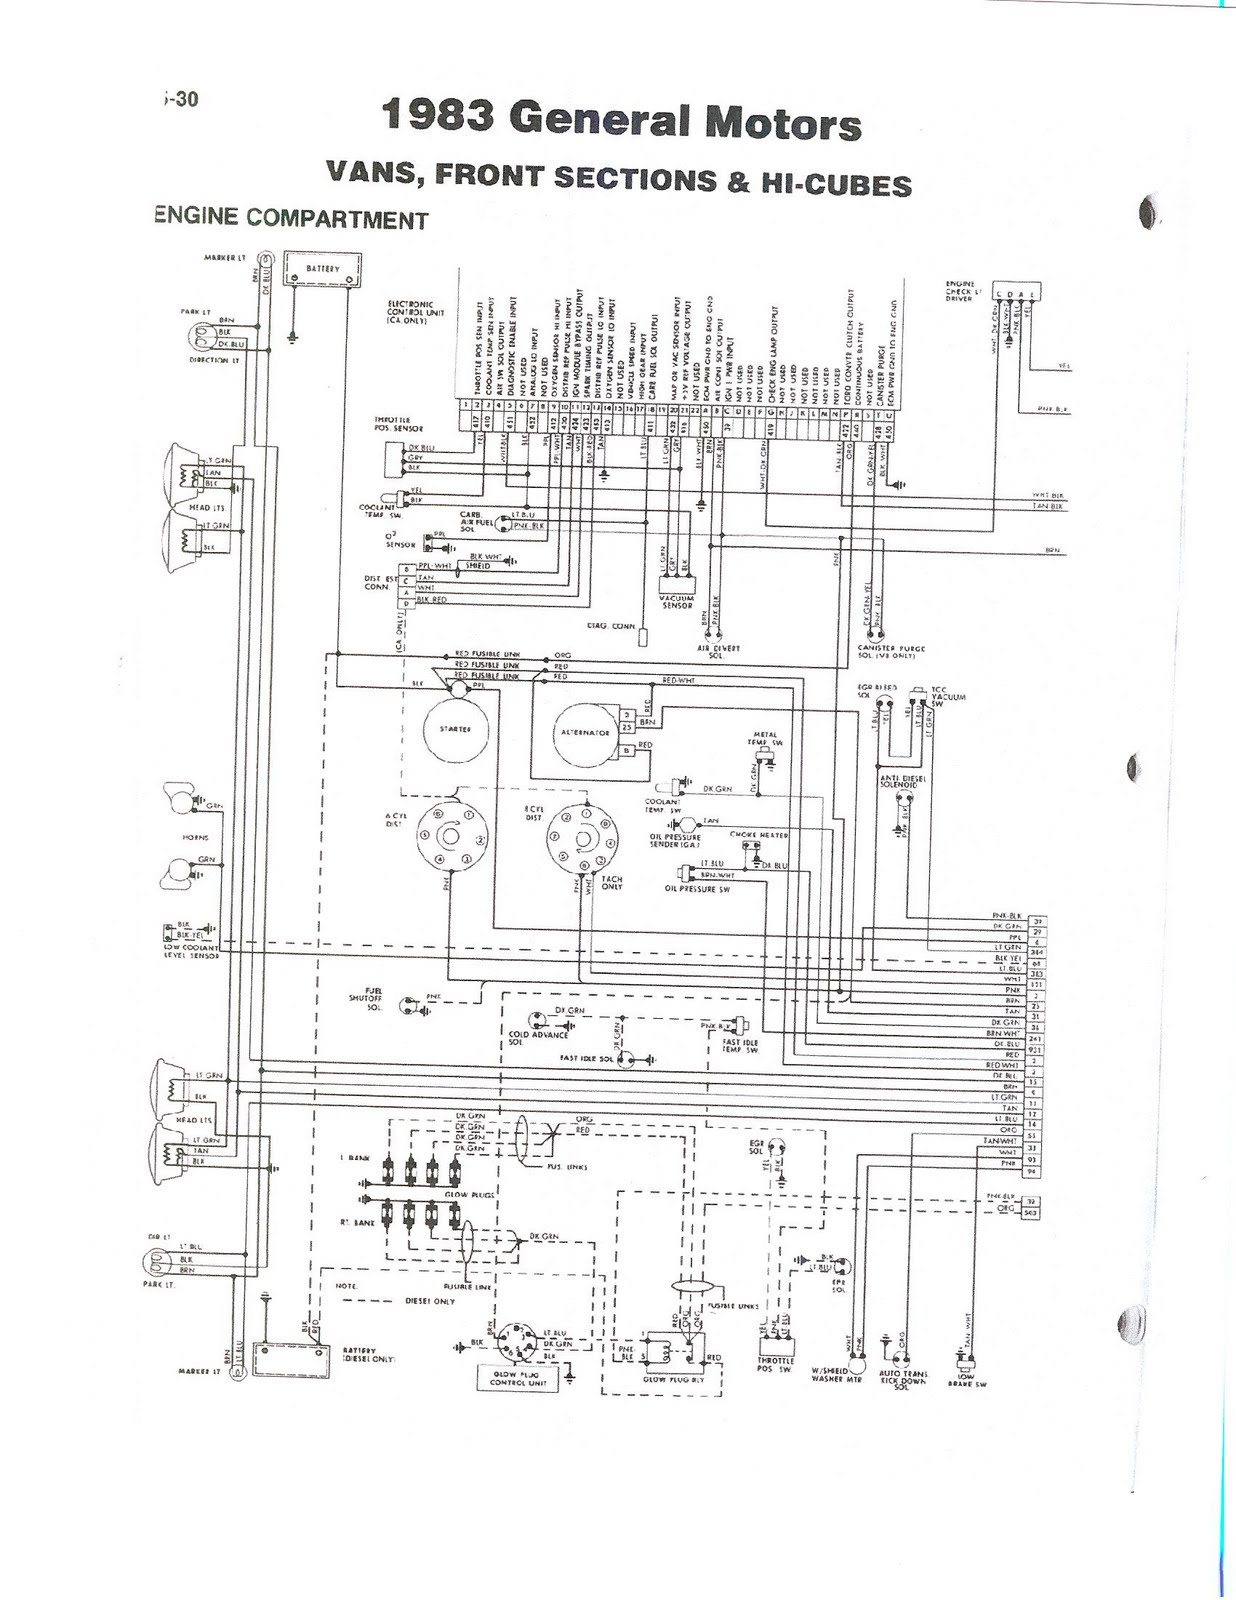 1983 Fleetwood Pace Arrow Owners Manuals: Wireing diagram 83 GM ...